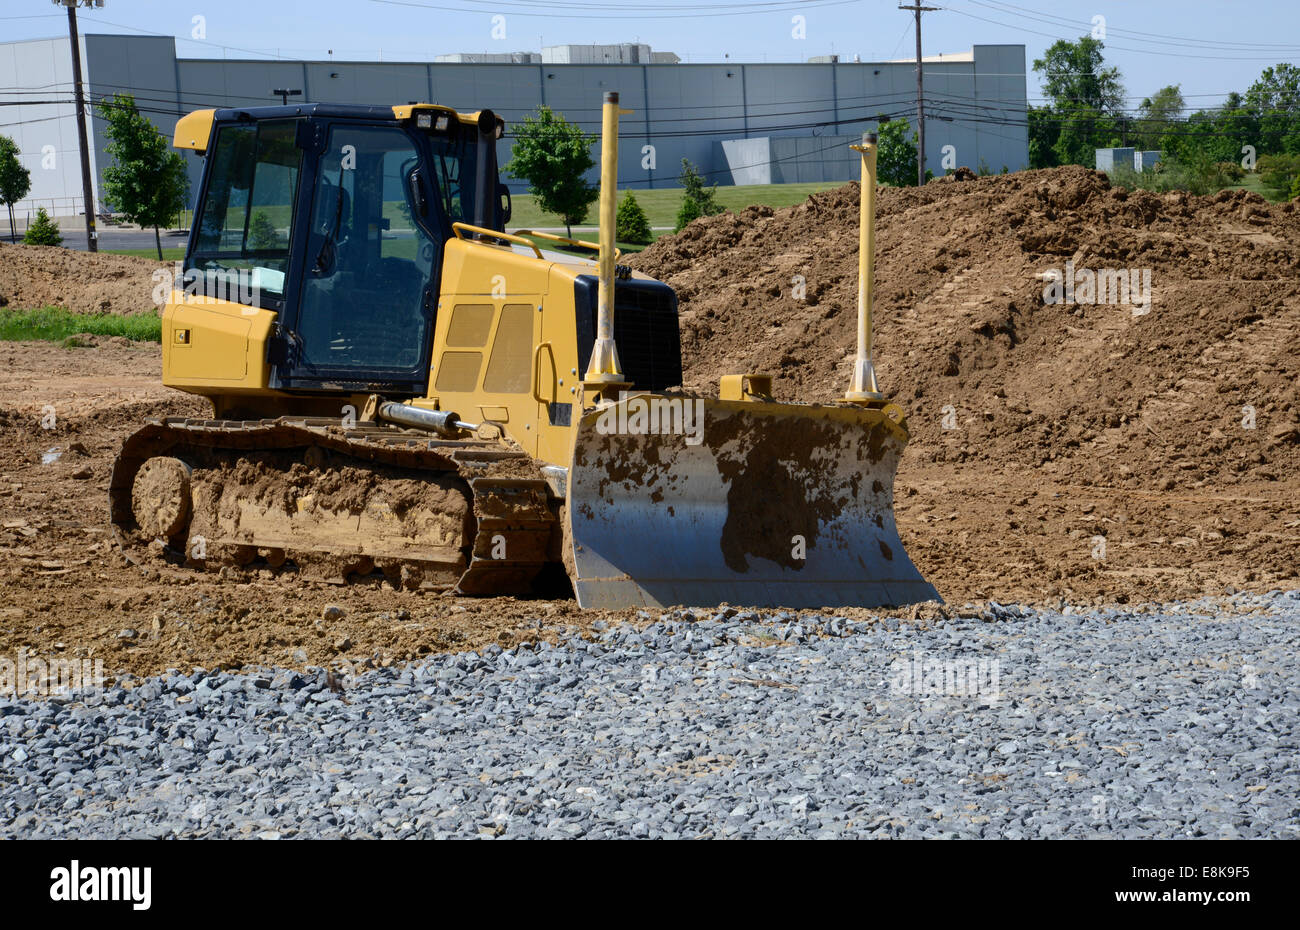 large bulldozer at a construction site - Stock Image